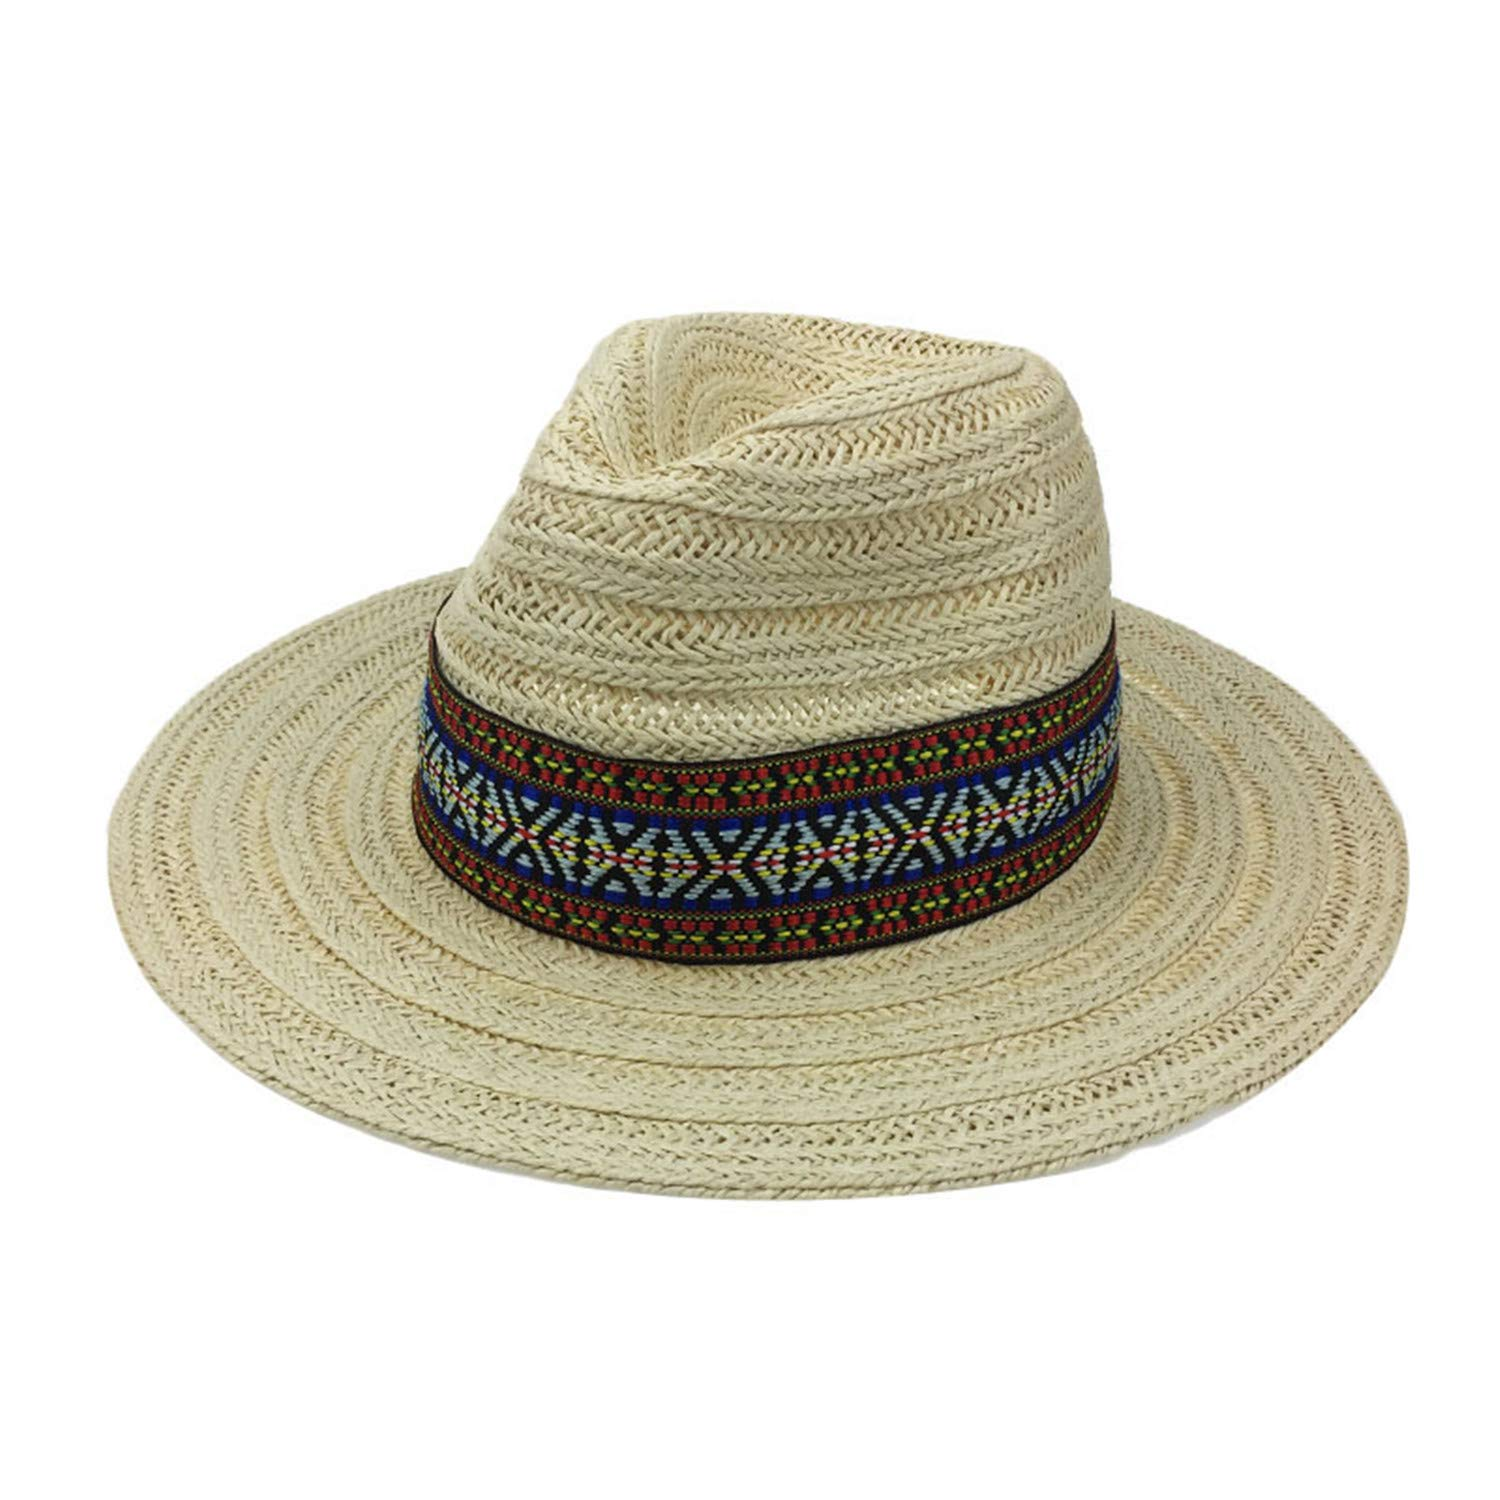 Cookisn Women Beach Sunhat Man Gorras para Mujer Verano YY18048 Beige Straw Panama Free at Amazon Womens Clothing store: